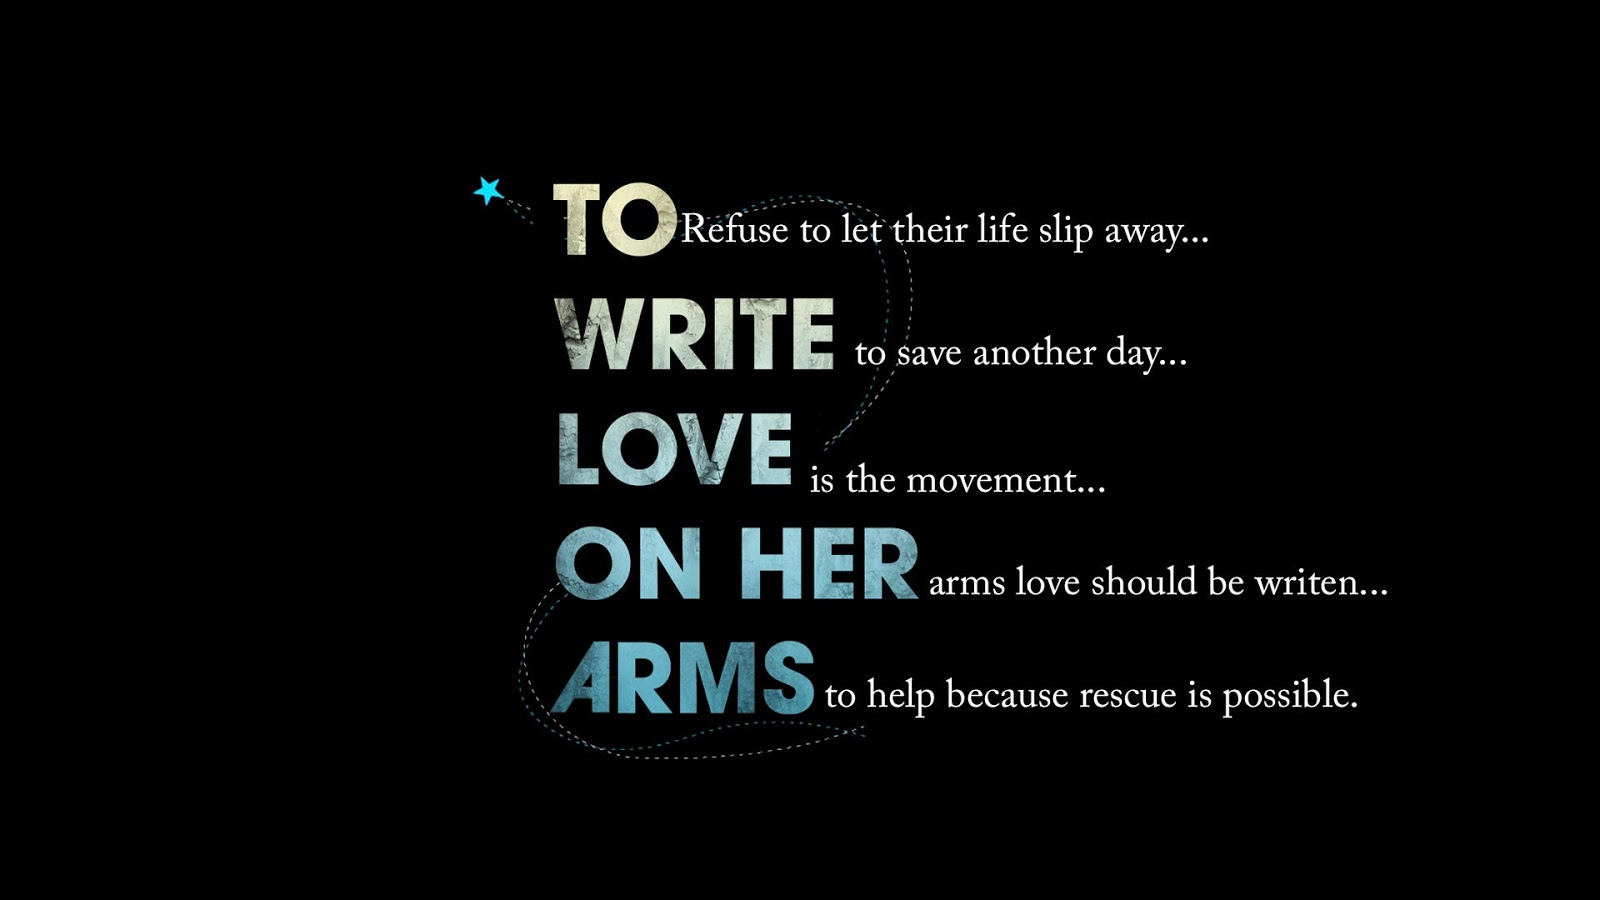 Quotes-About-Love-black-background-image-Hight-resolution.jpg